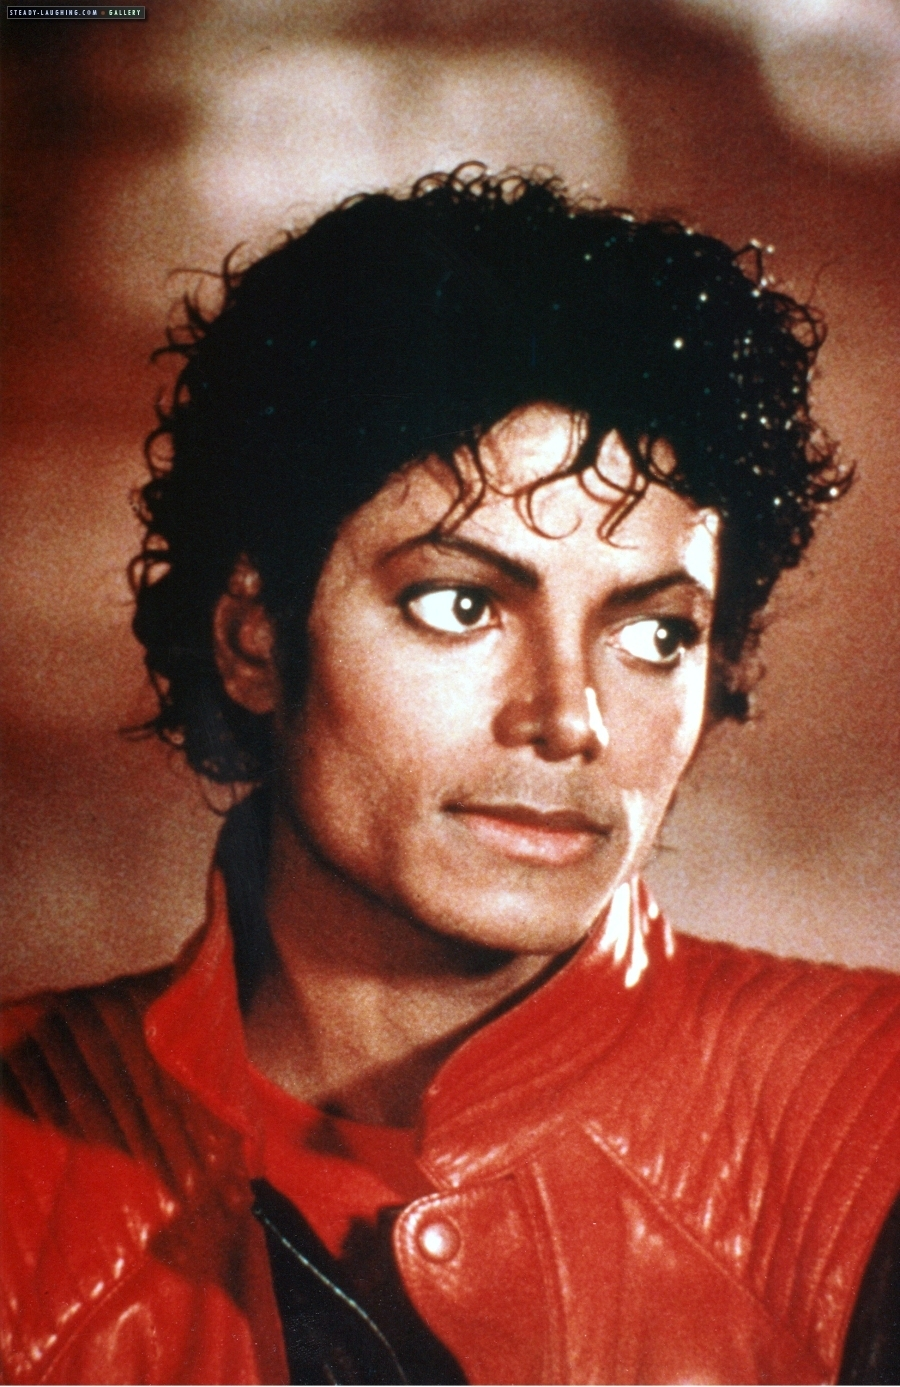 how many songs did michael jackson write How many number 1 songs did michael jackson write chacha answer: michael jackson had too many #1 songs to even count.